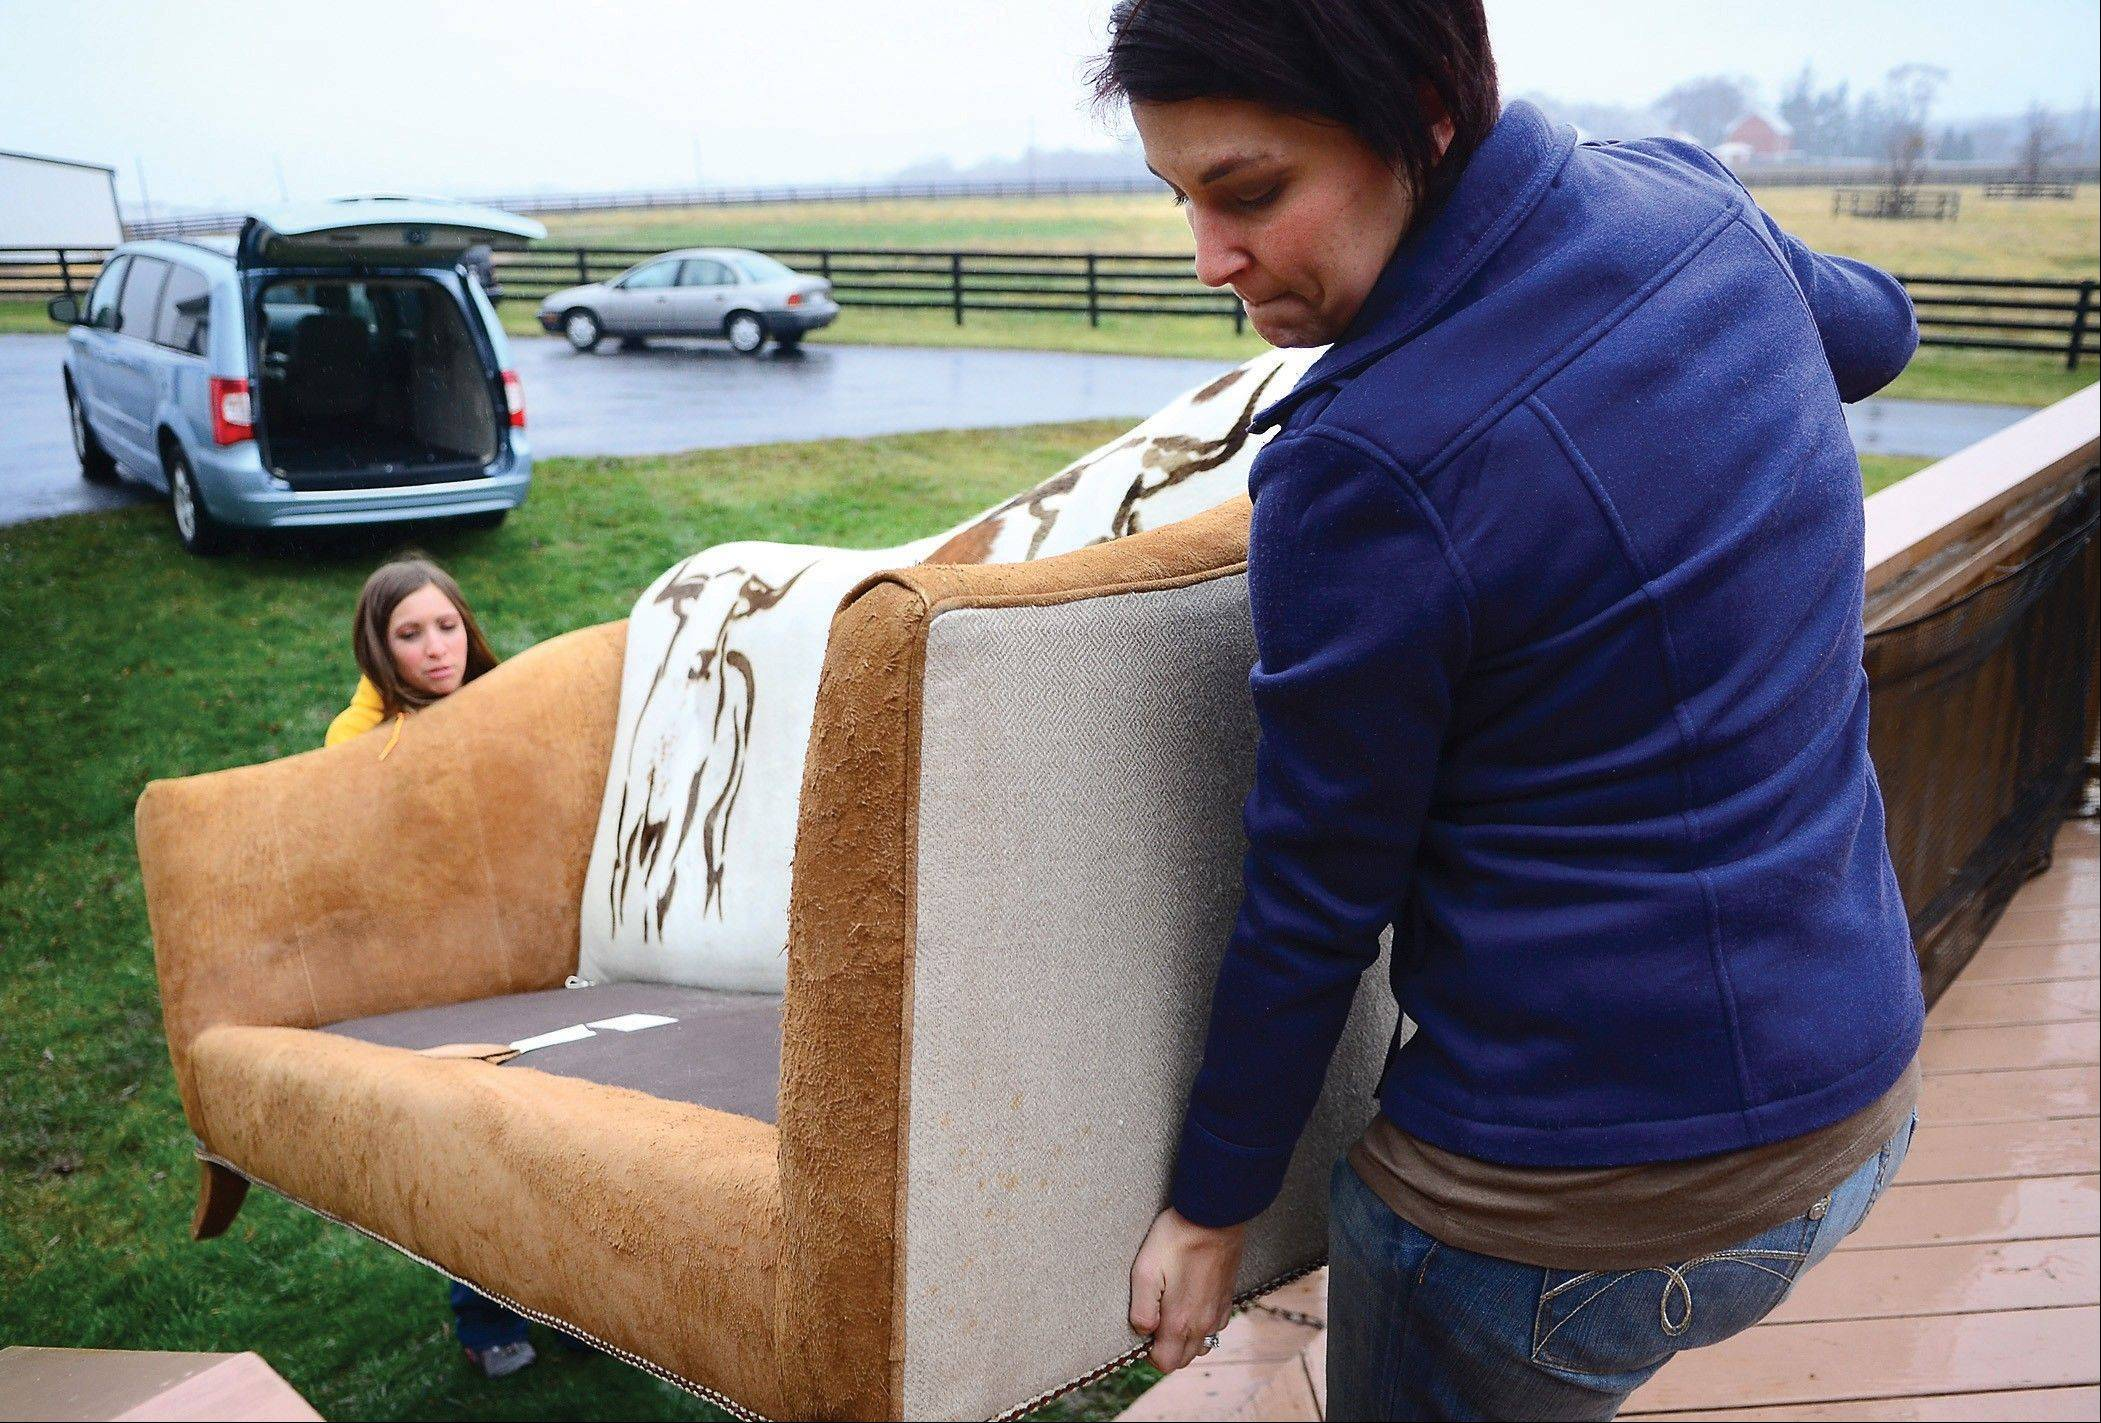 Associated Press  Anneliese Benesh, left, and Erin Wustrack of Omrol, Wis. lug Benesh's custom cowhide couch to their van in Dixon/